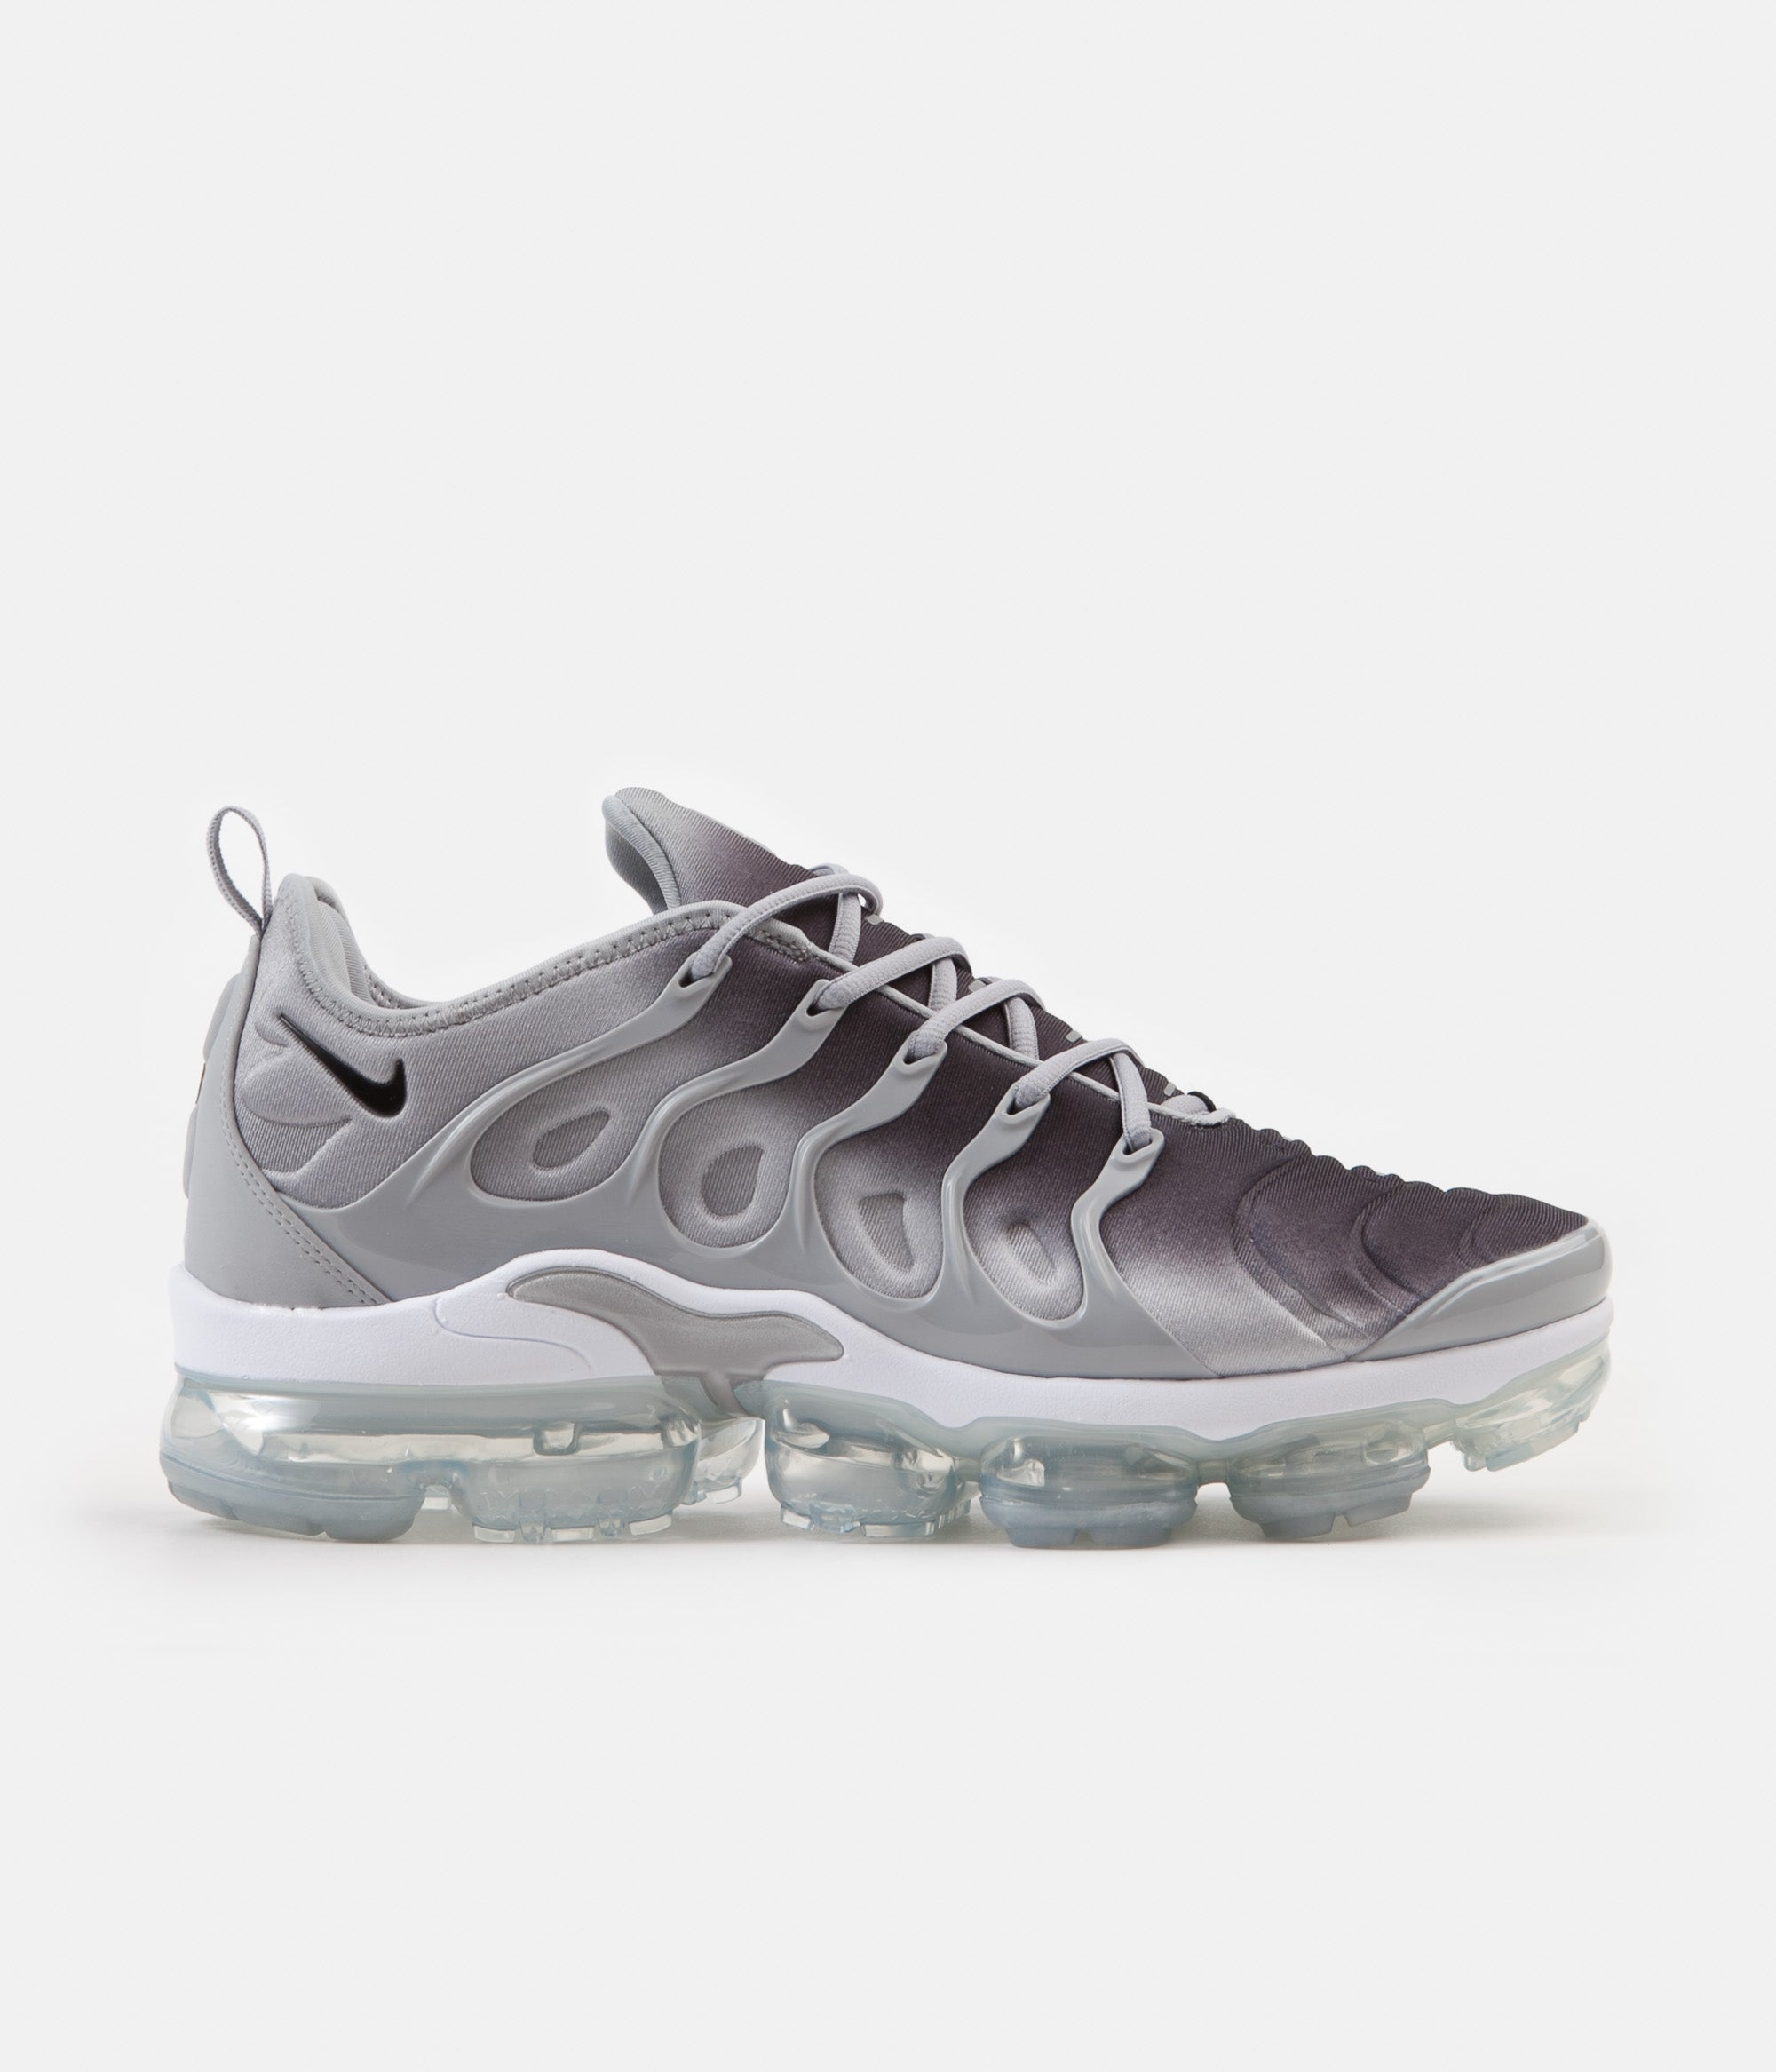 b1e117d731 Nike Air VaporMax Plus Shoes - Wolf Grey / Black - White | Always in ...